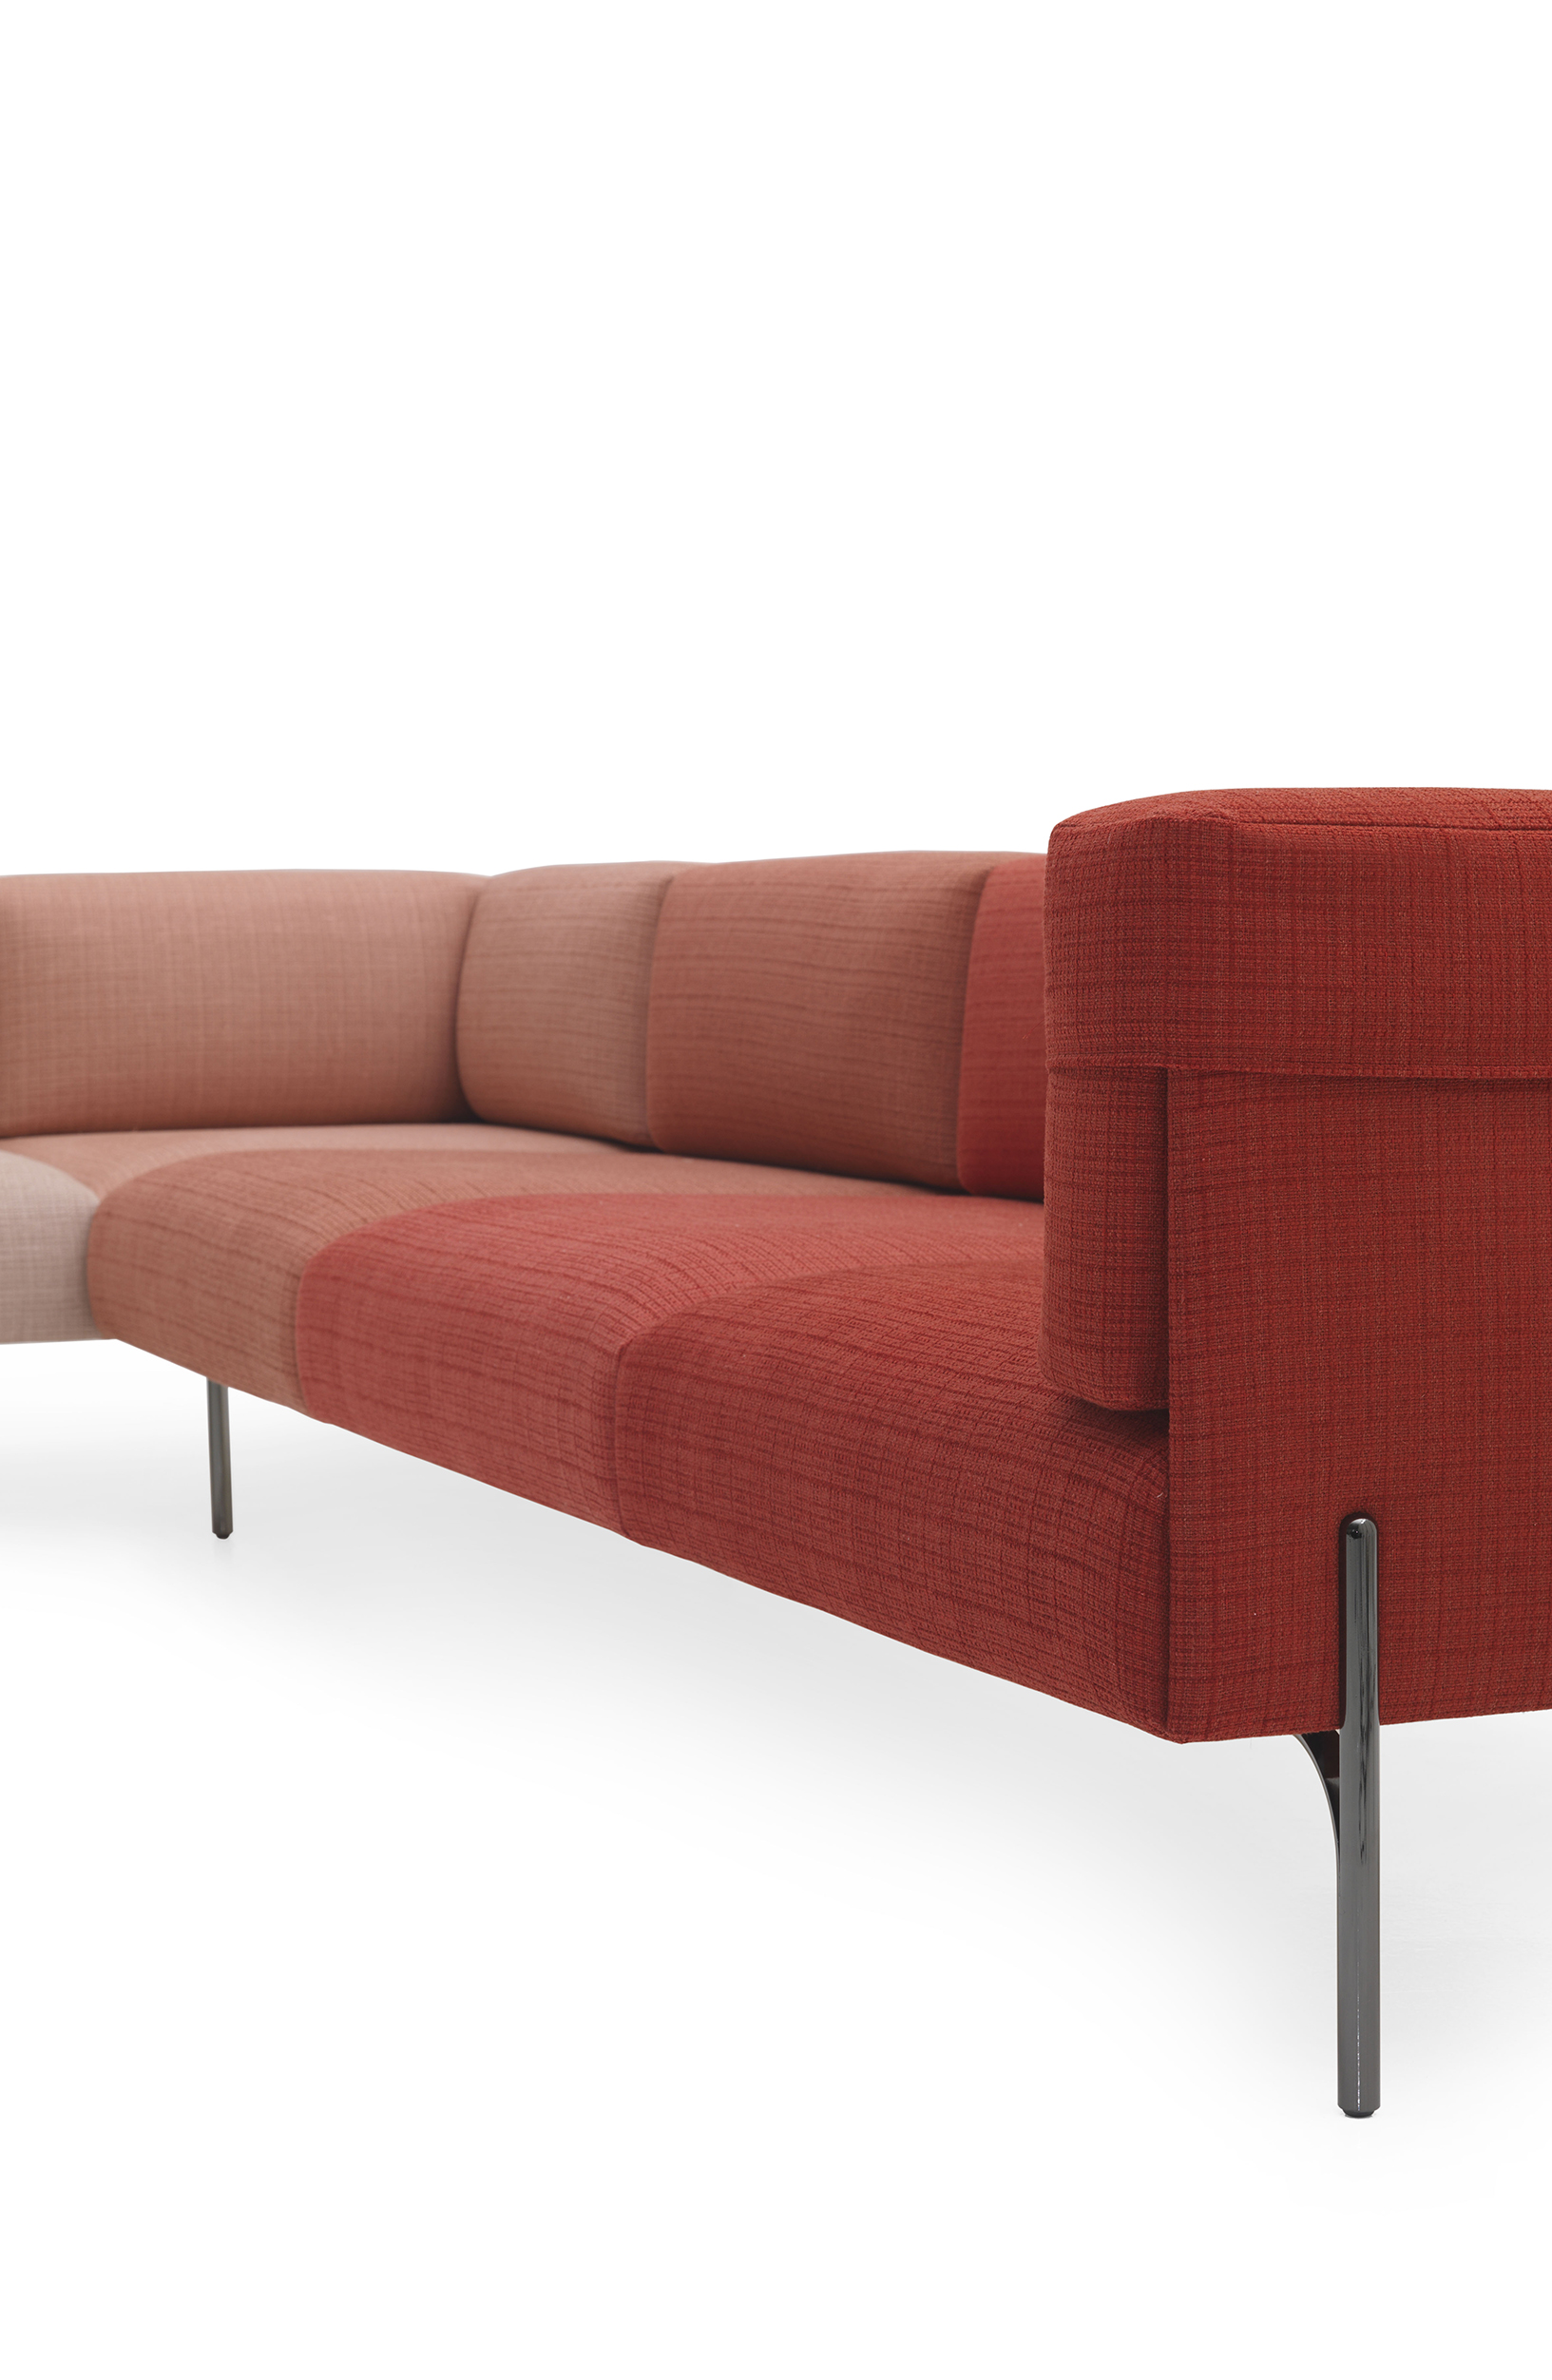 Beyond Technical Prowess And Innovation The Lightness Of Palmer Sofa Mainly Echoes Spirit Maison Fendi A Shared Obsession With Reduction Relieved